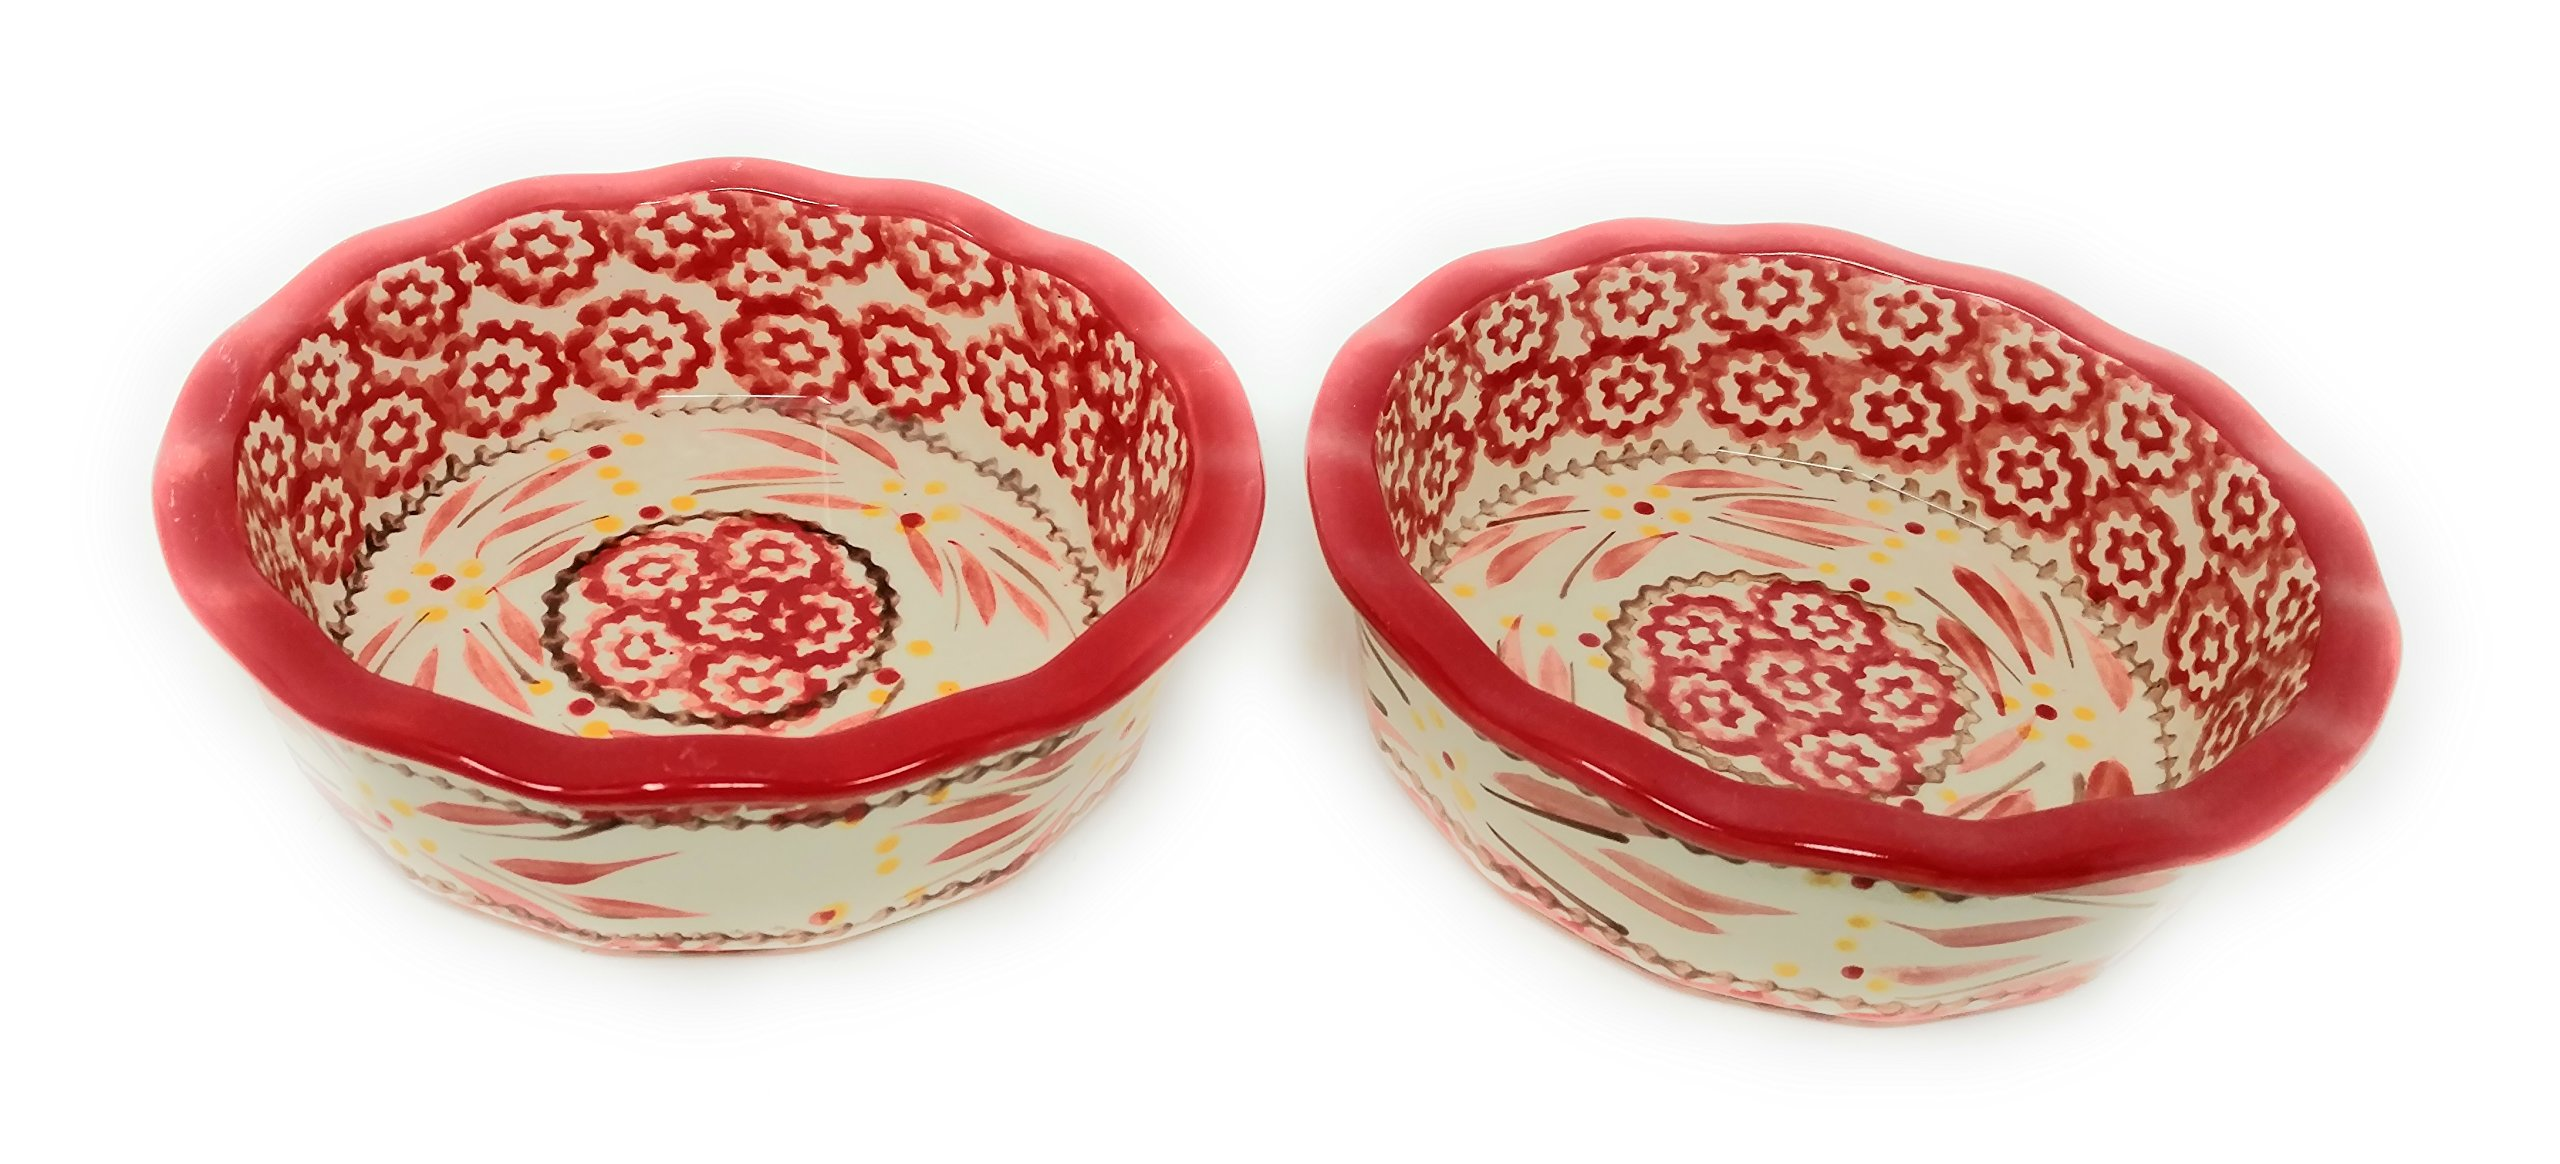 Temp-tations Set of 2 Mini Pie Pans, Deep Dish 5.75'' x 1.75'' each - Stoneware (Old World Red) by Temptations (Image #1)